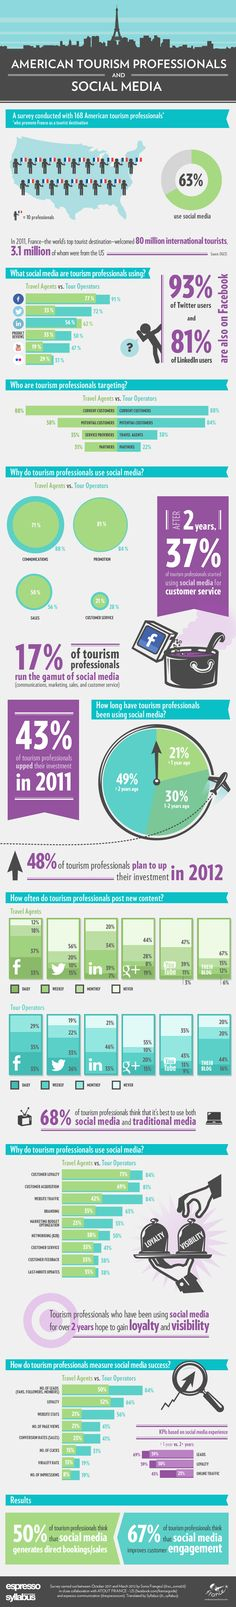 American tourism professionals and social media [INFOGRAPHIC]